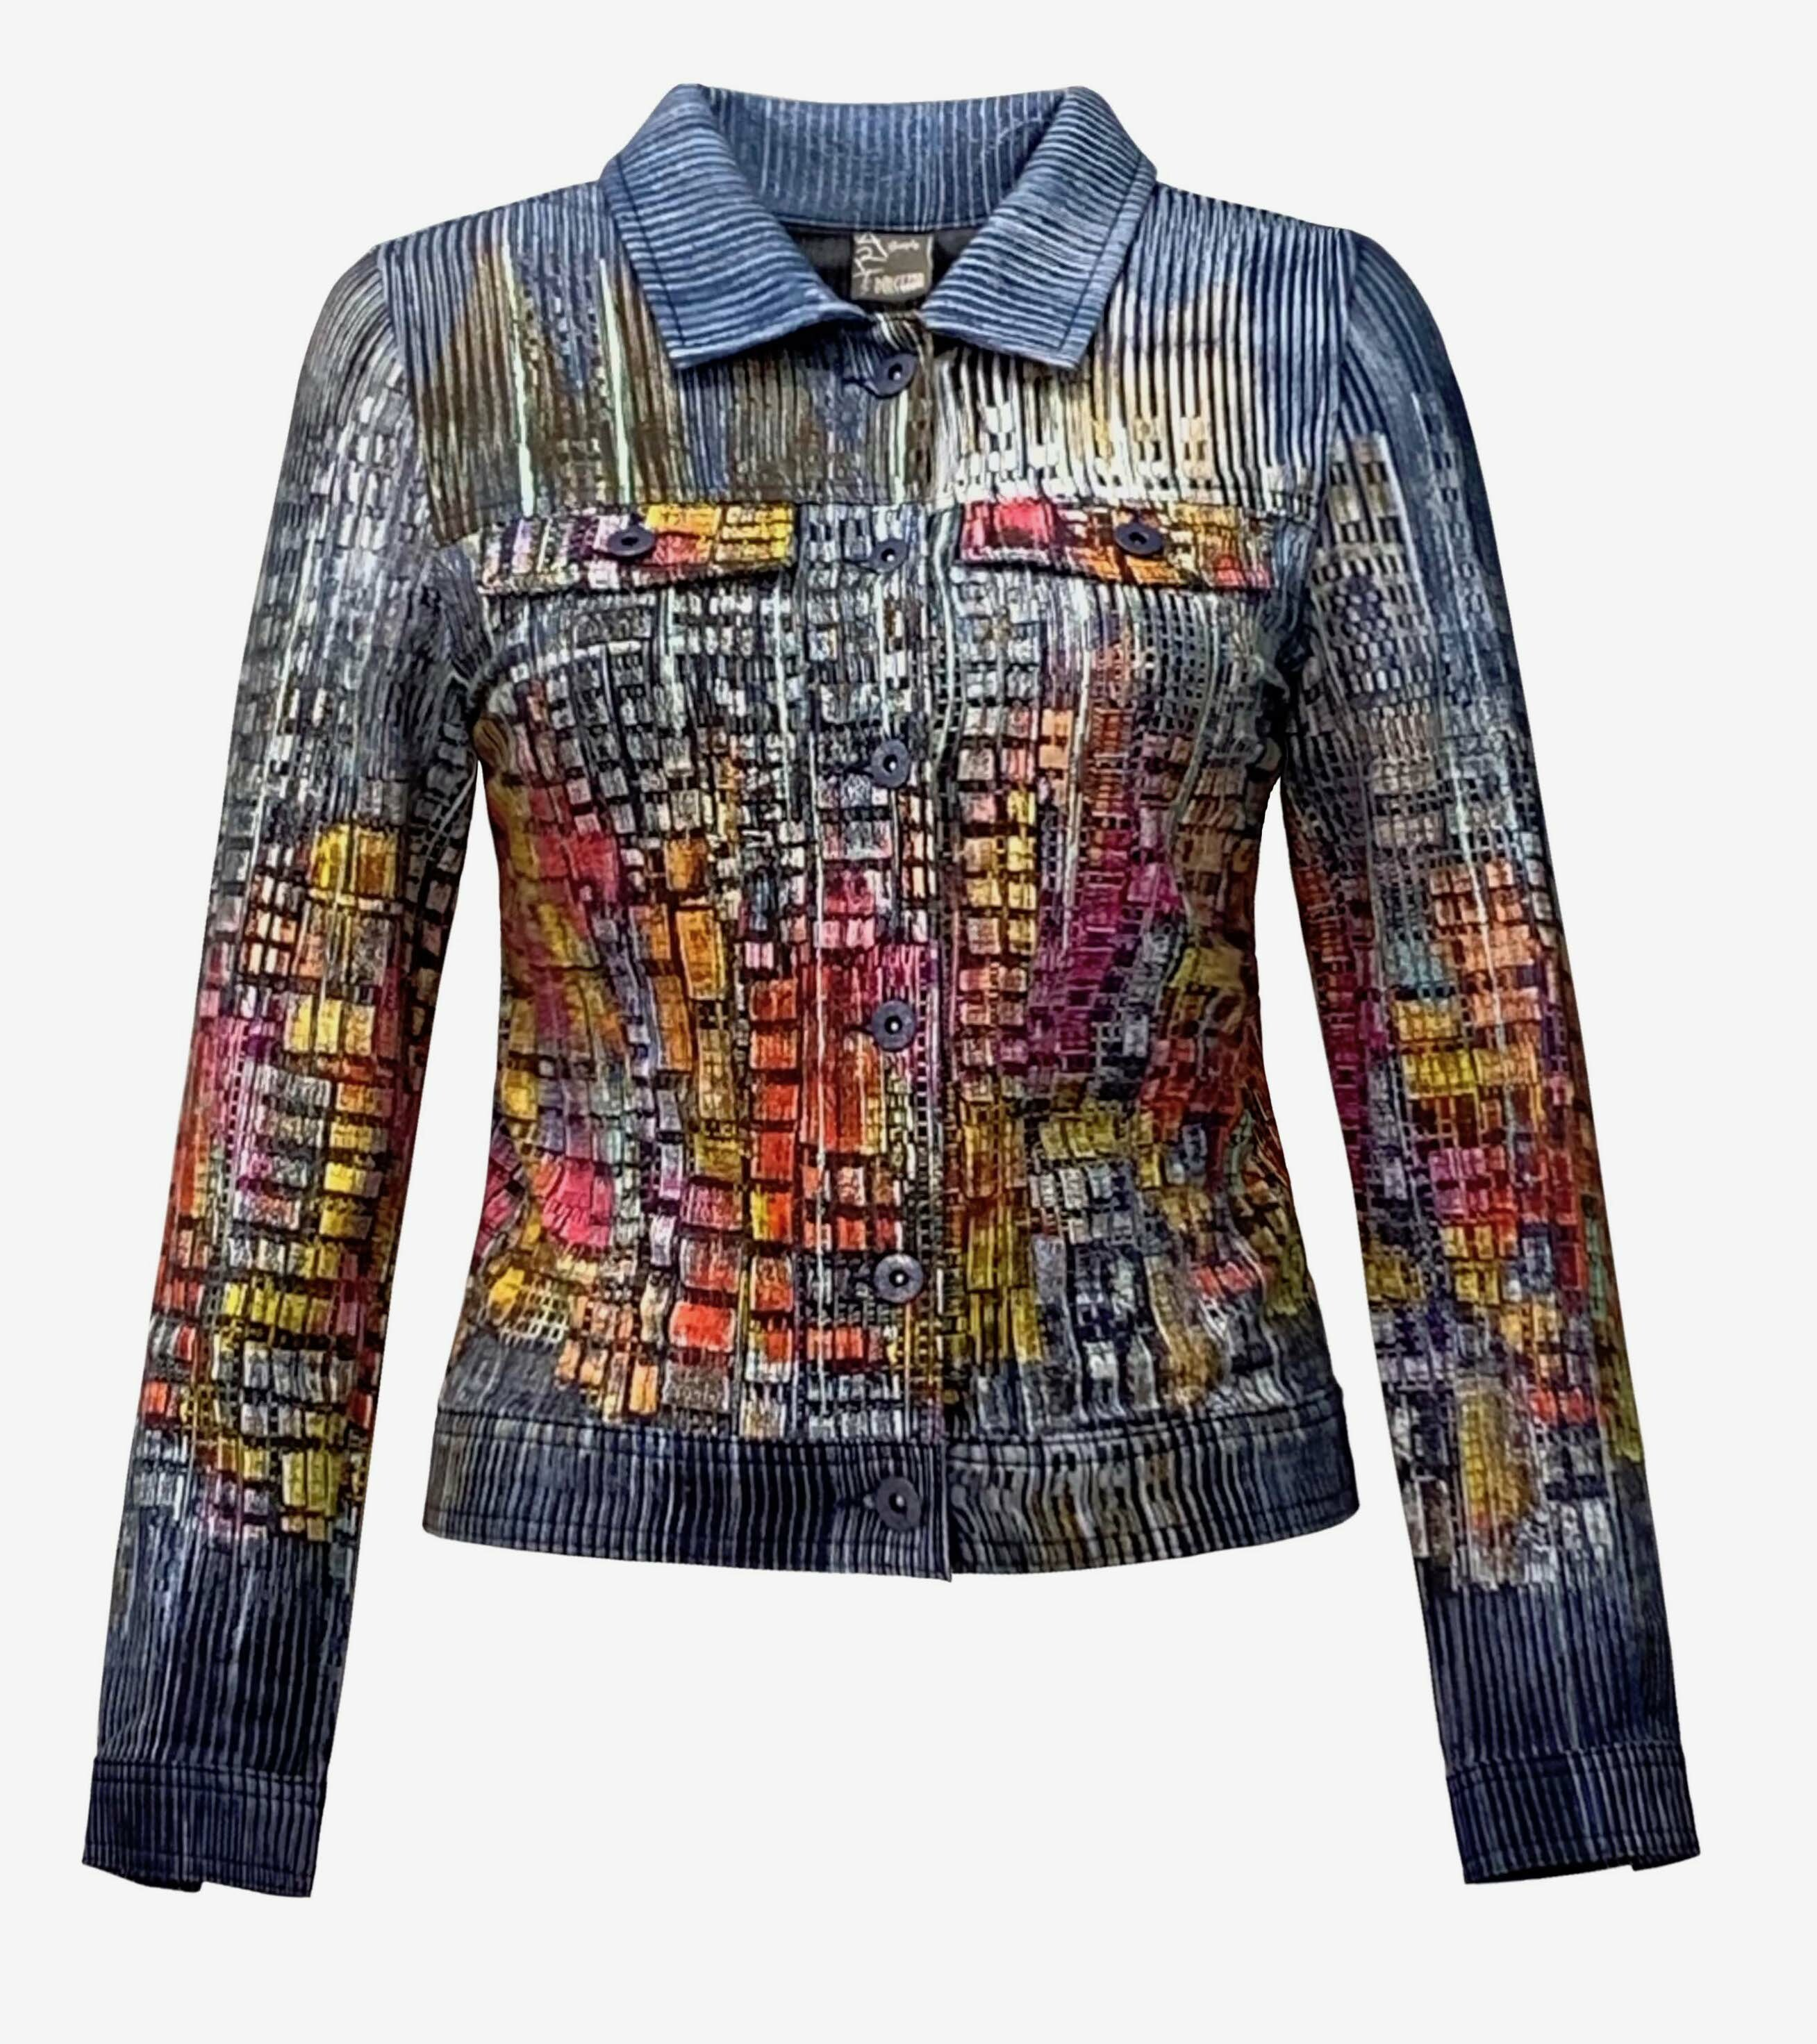 Simply Art Dolcezza: Papillons Of The Night Abstract Art Soft Denim Jacket SOLD OUT Dolcezza_SimplyArt_59735_N